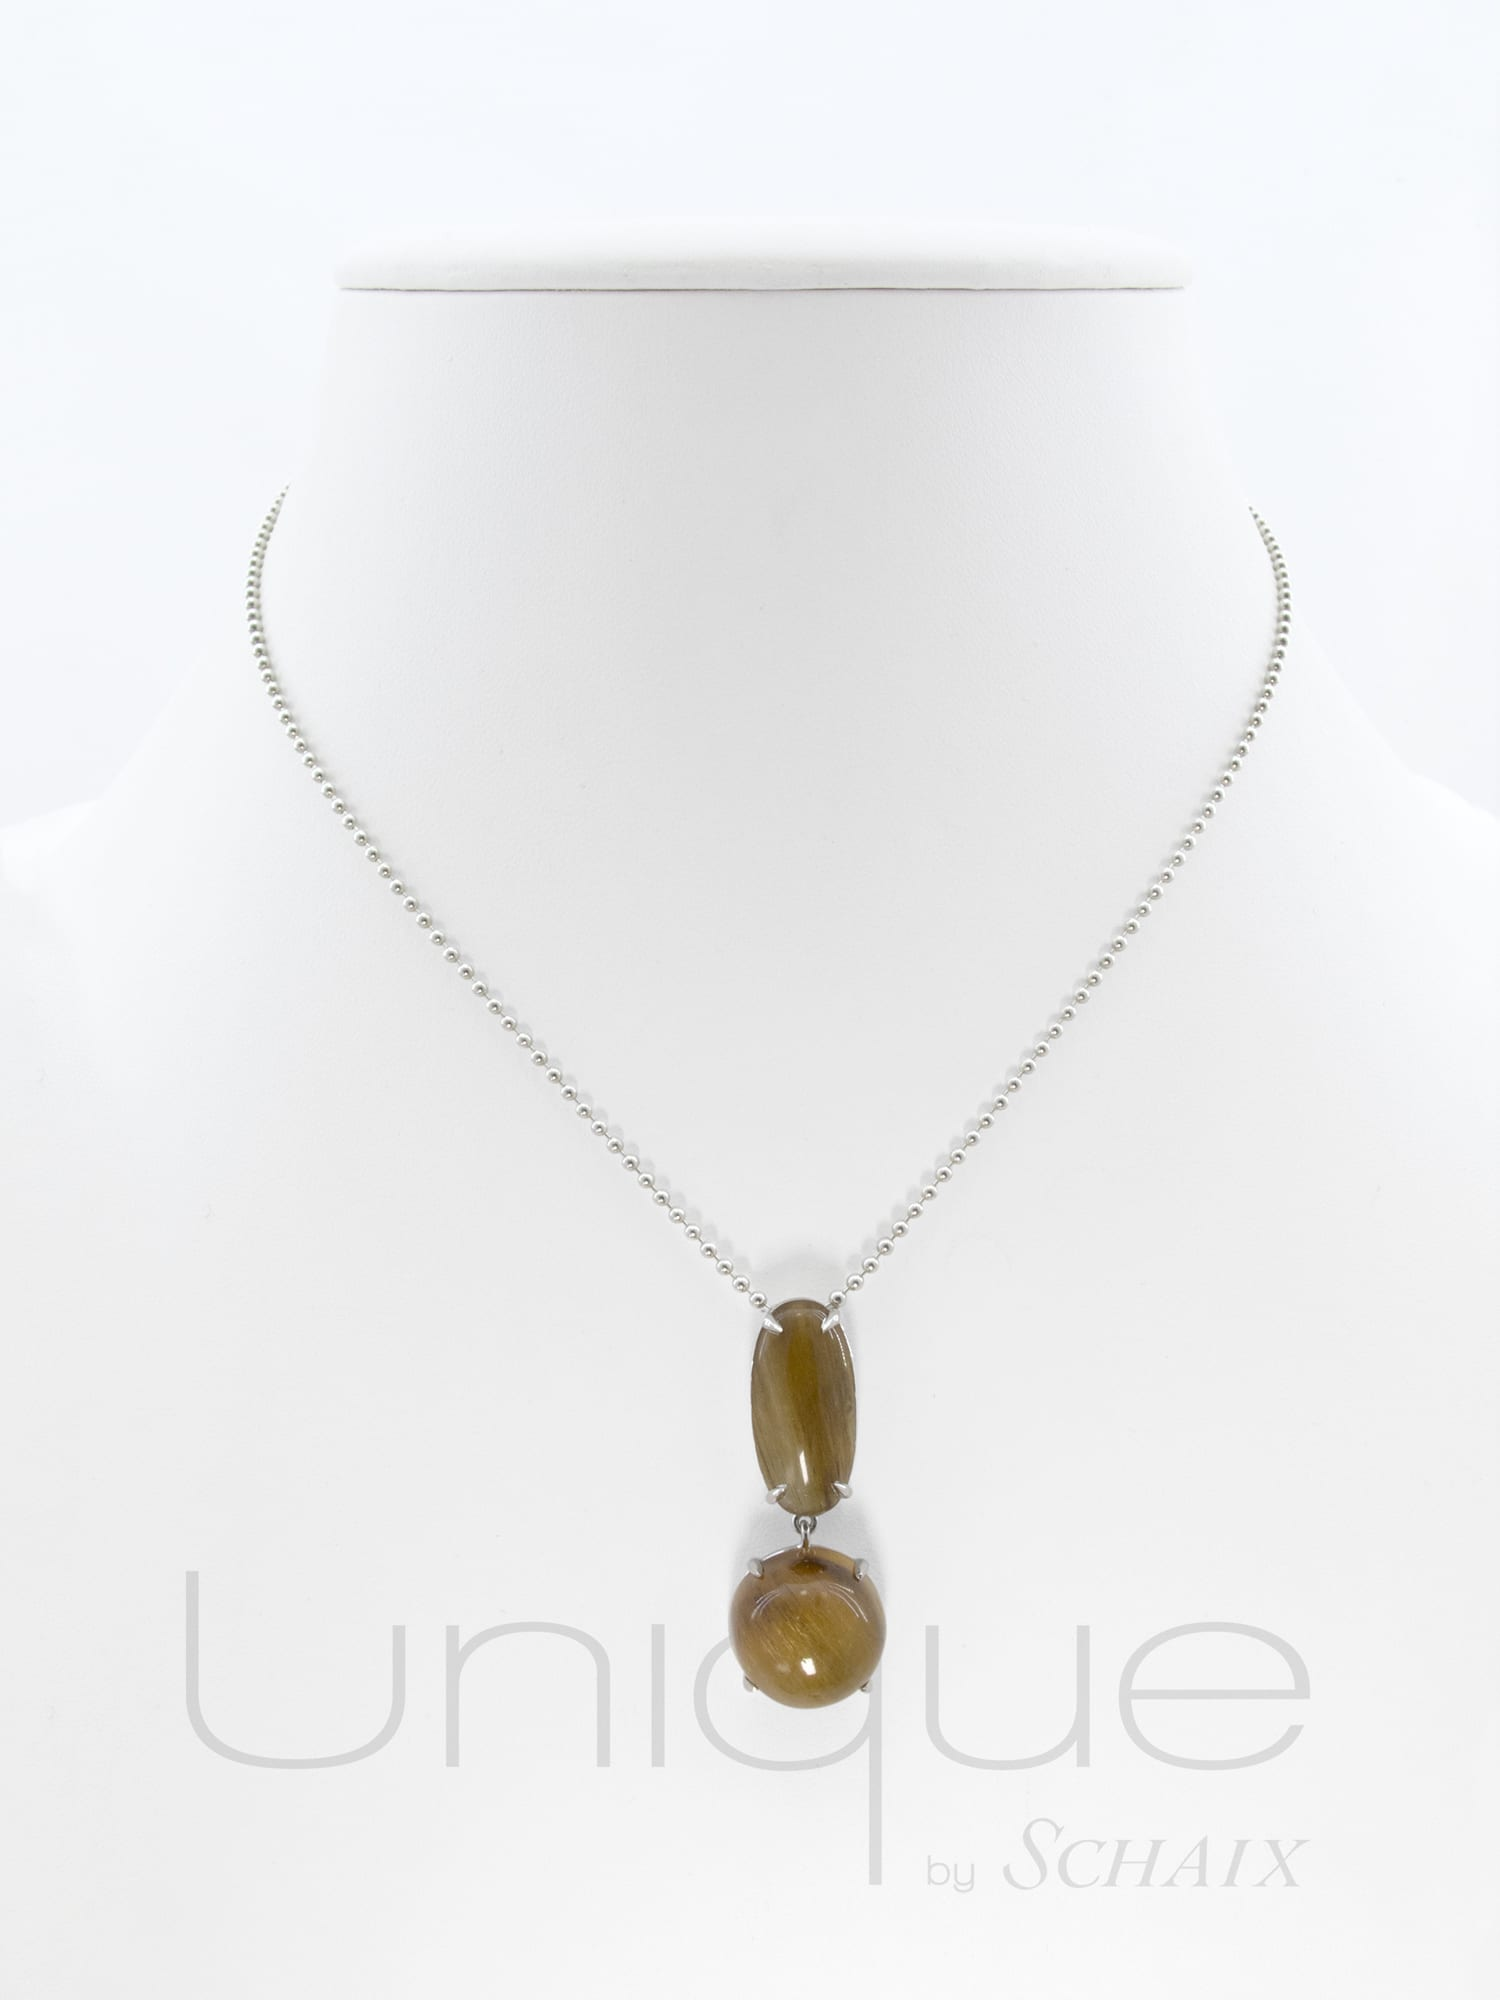 Necklace with a round rutilated quartz cabochon topped with a coordinated oval cabochon in a silver beads chain.